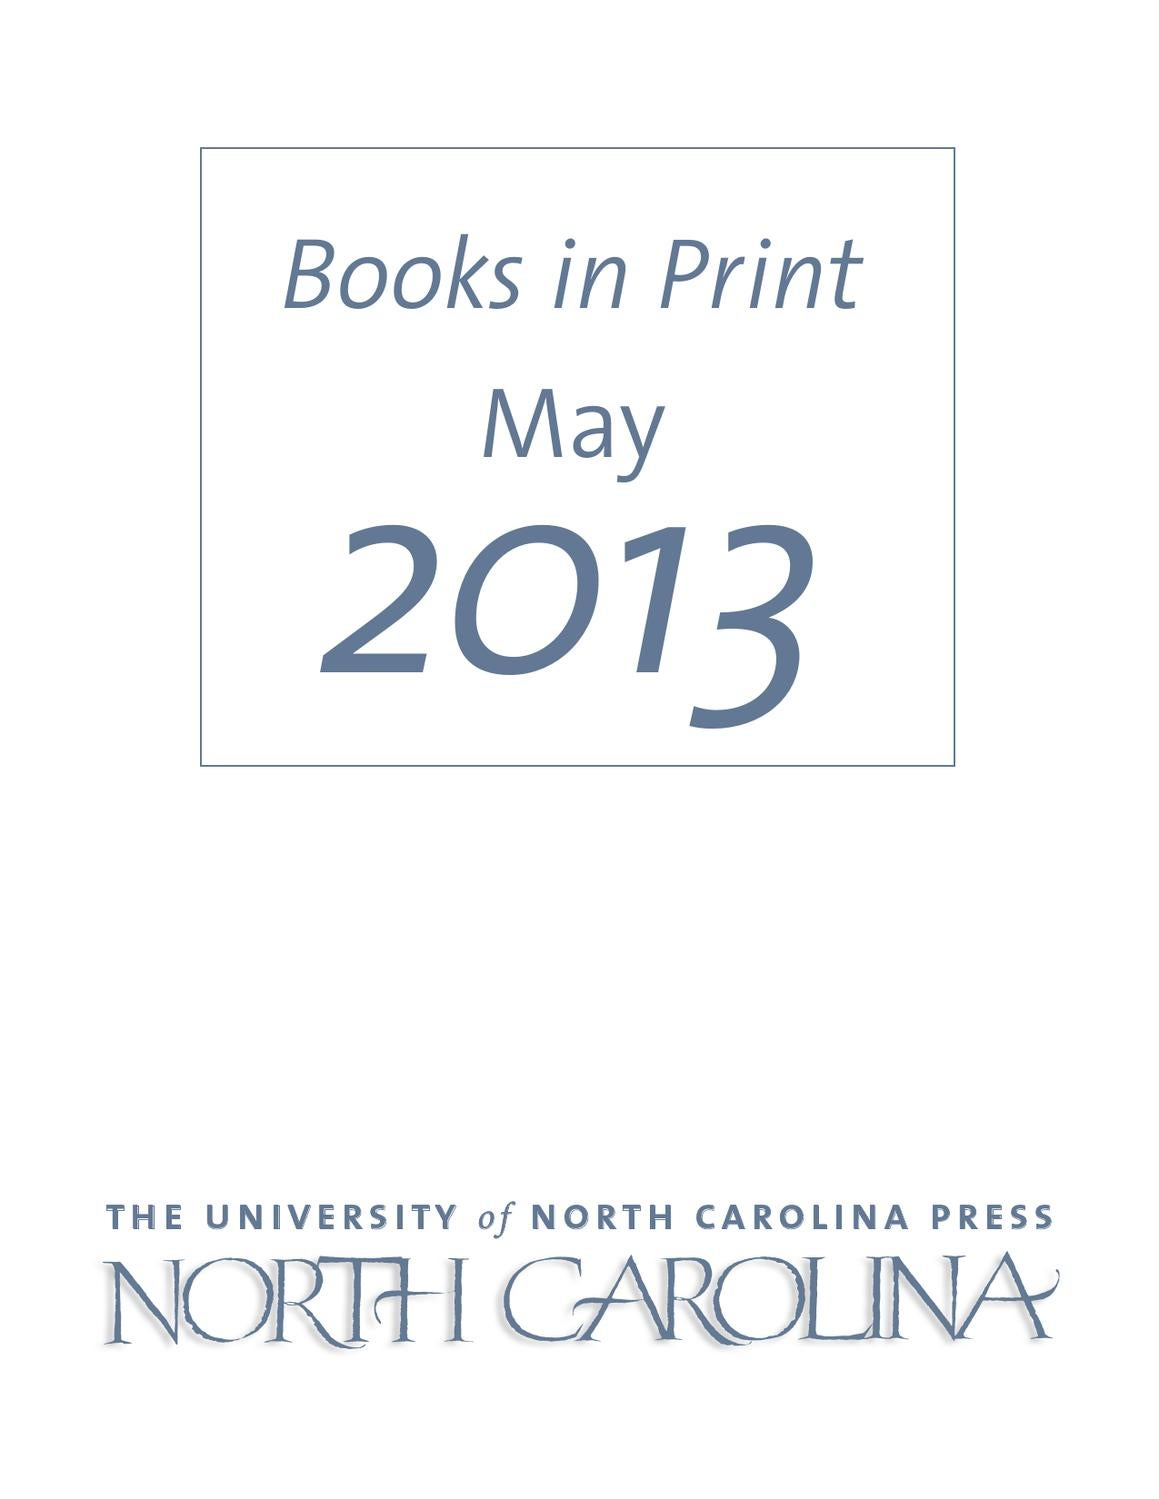 Unc press bip may 2013 by the university of north carolina press issuu fandeluxe Gallery